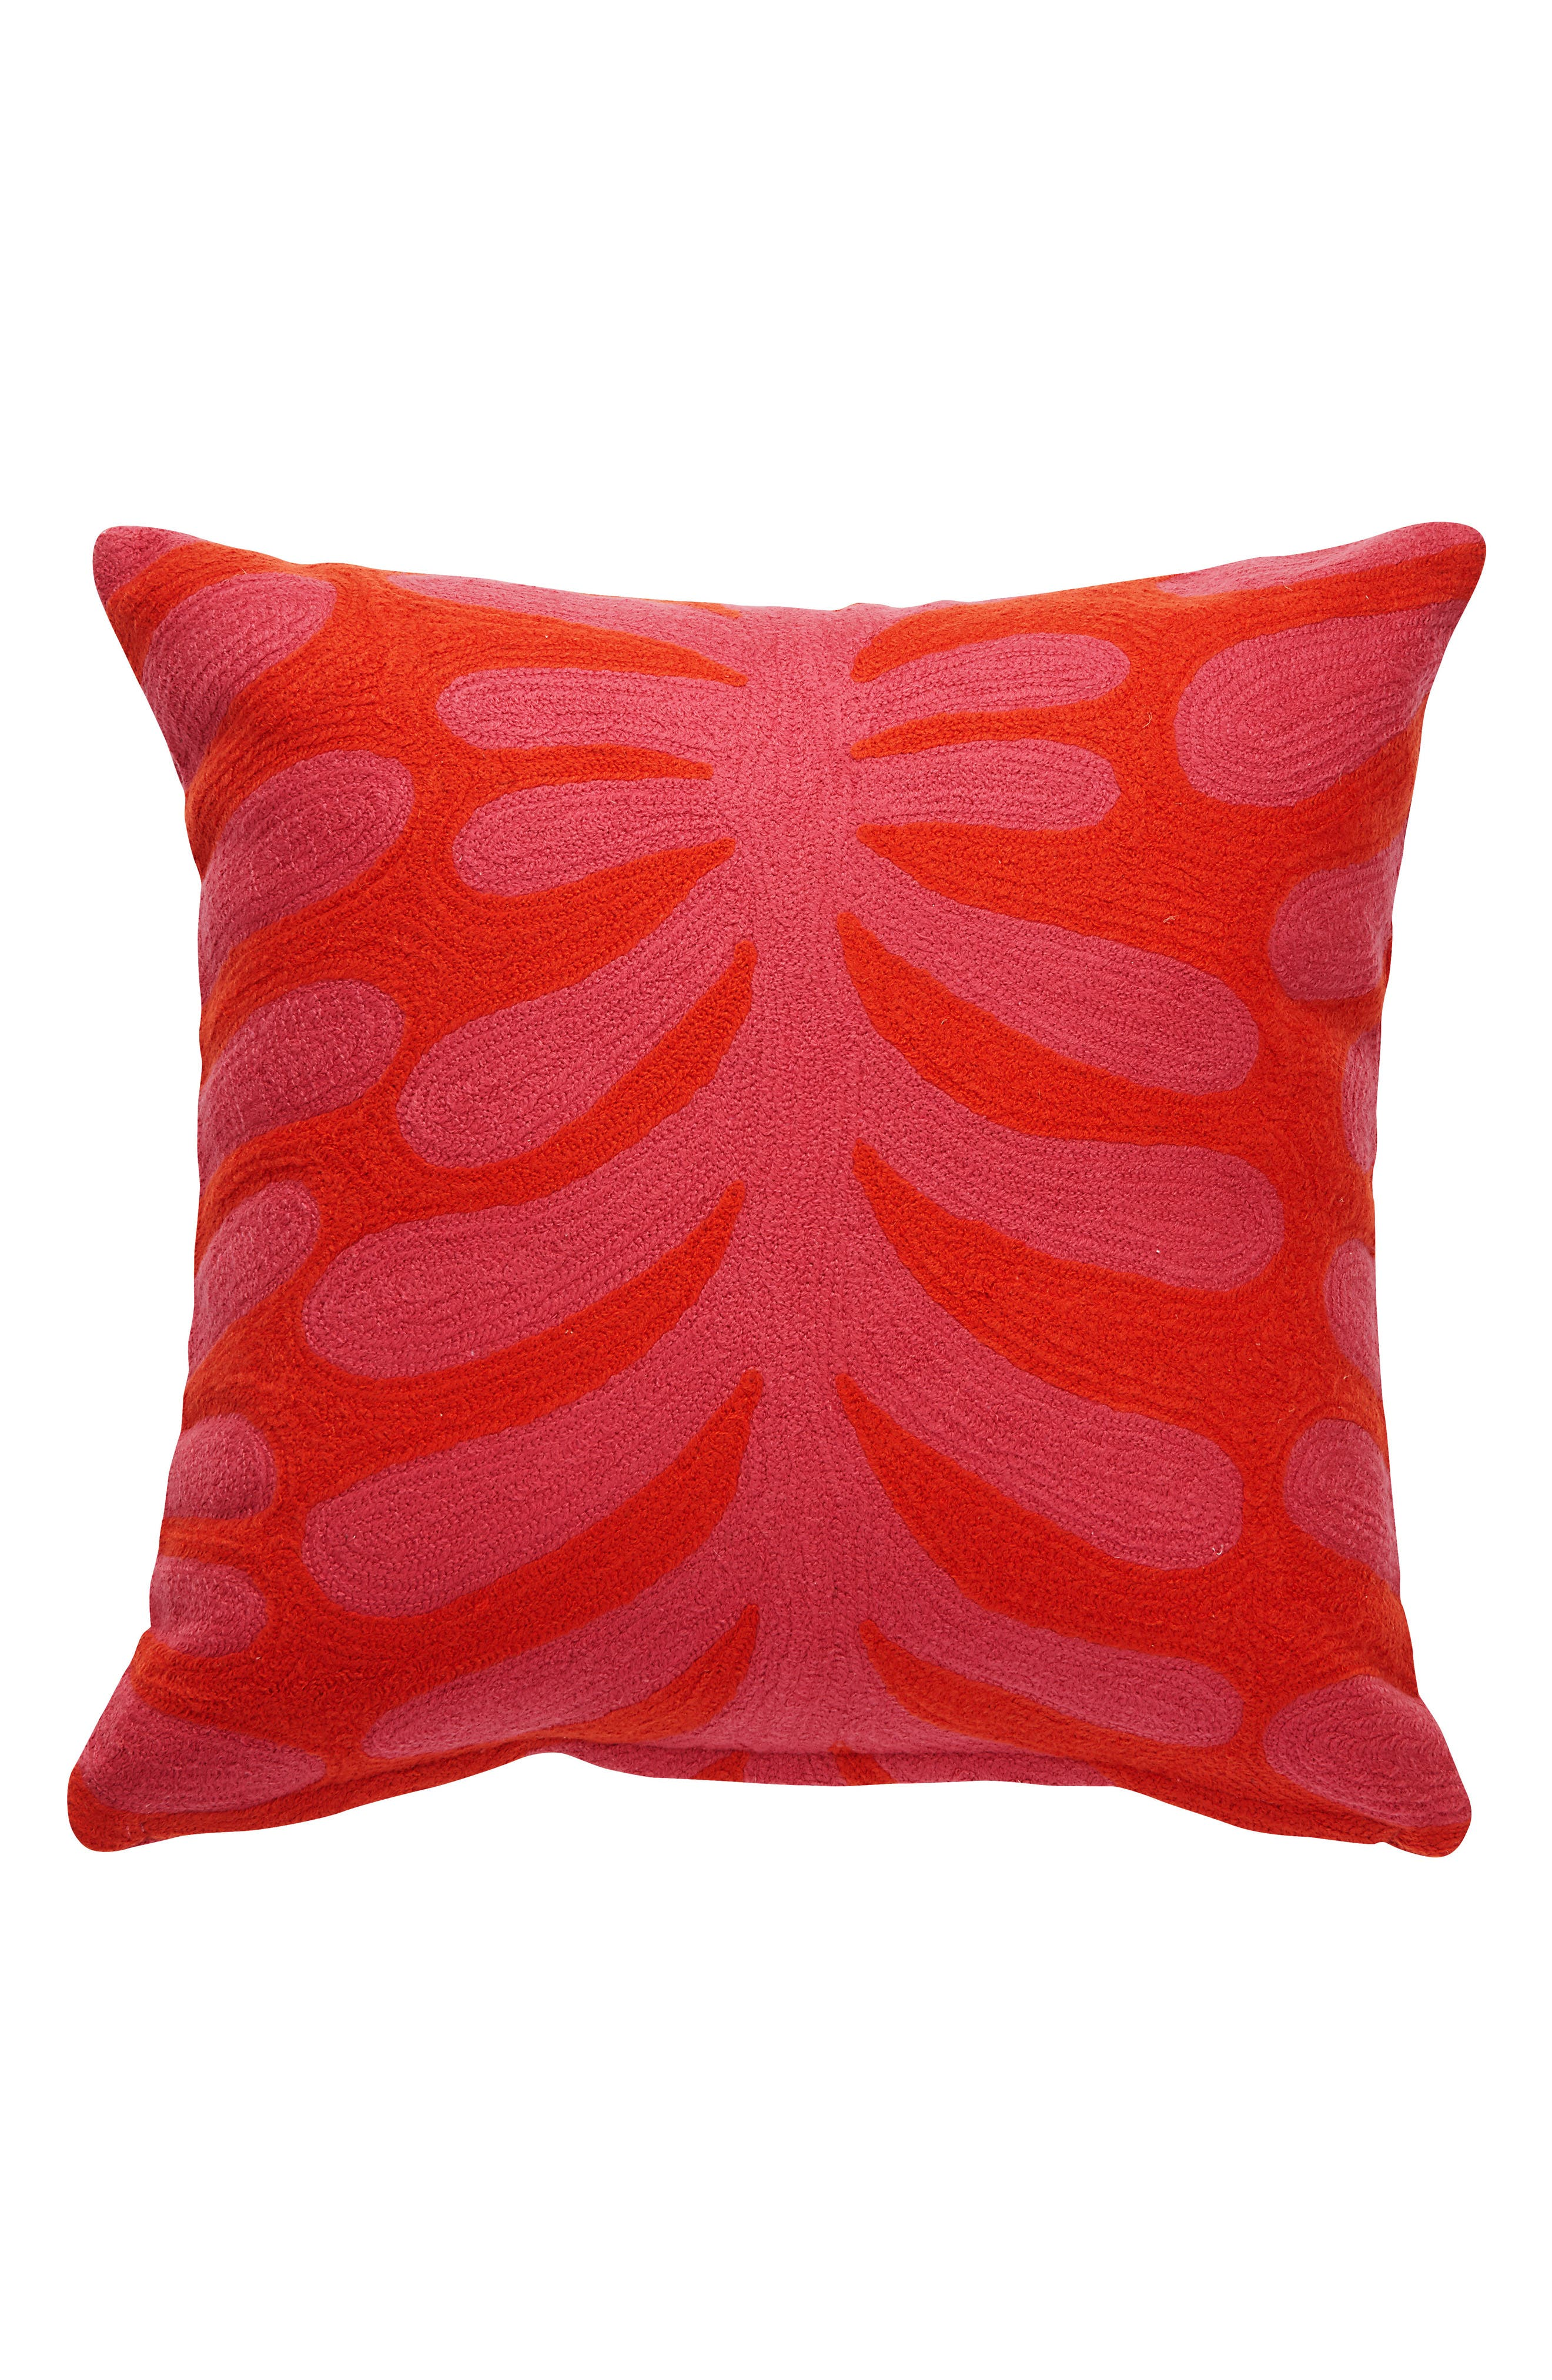 Main Image - kate spade new york abstract vine accent pillow